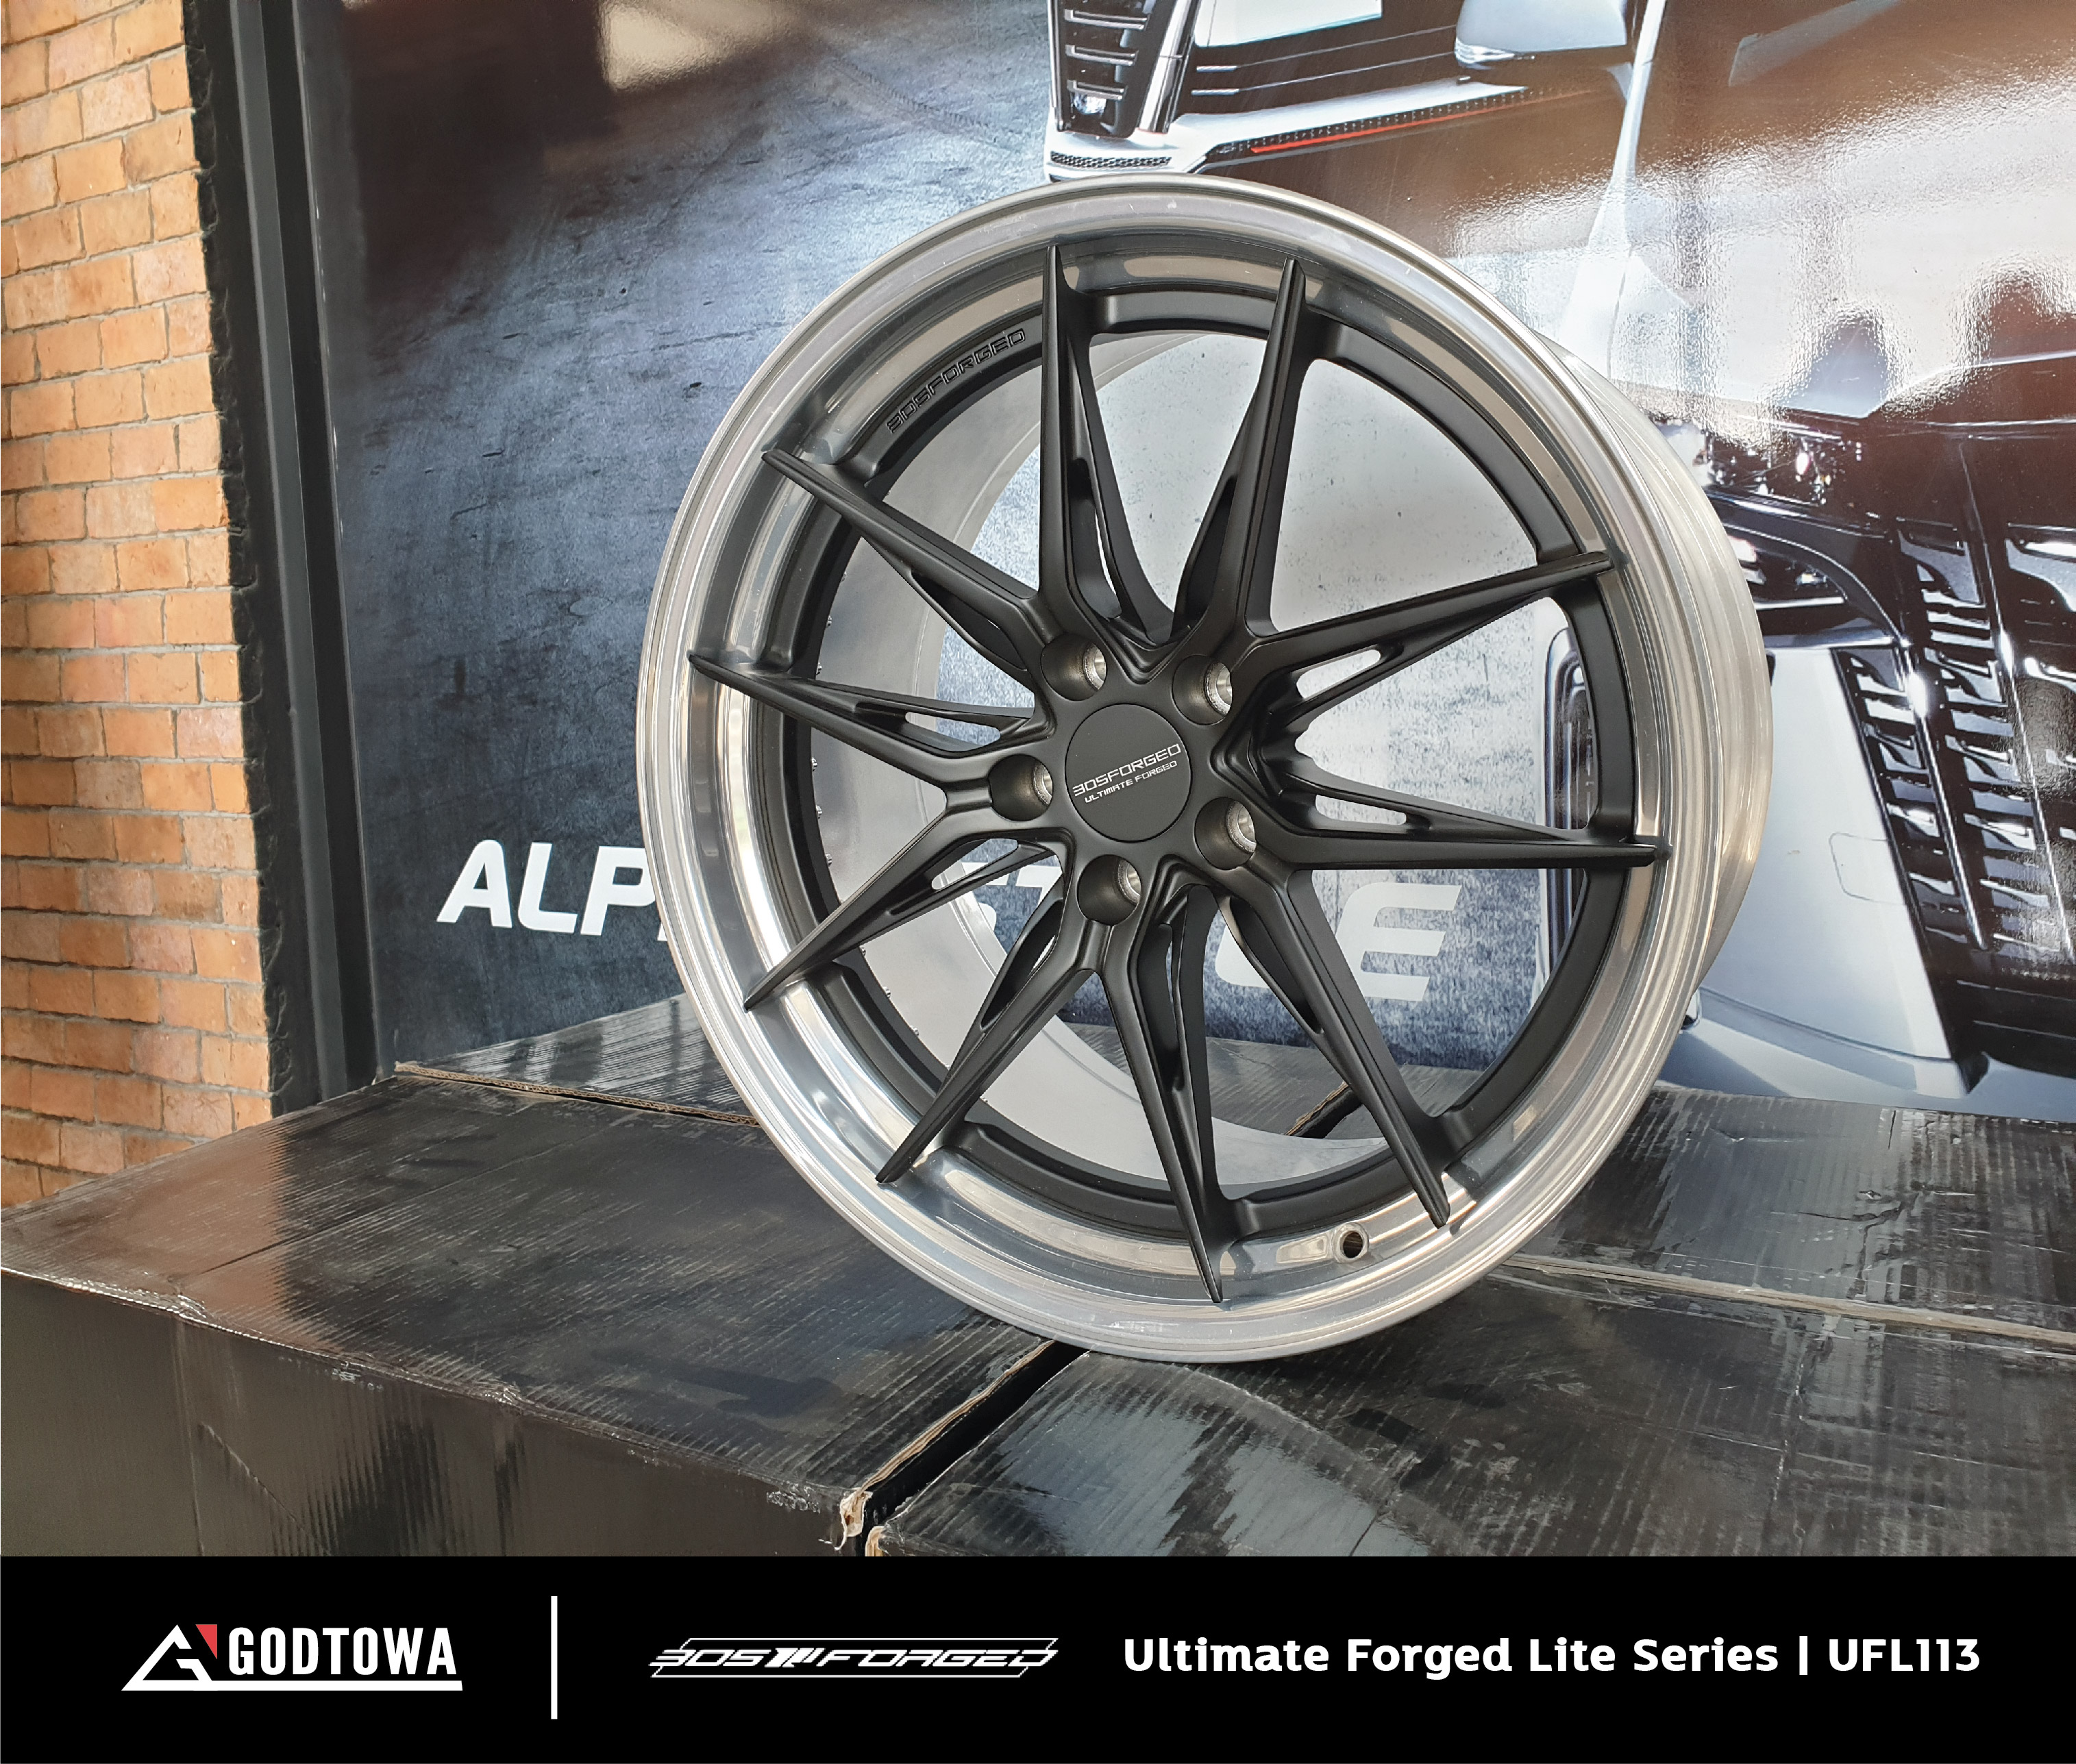 ล้อแม็กซ์ 305 Forged Ultimate Forged Lite Series | UFL113